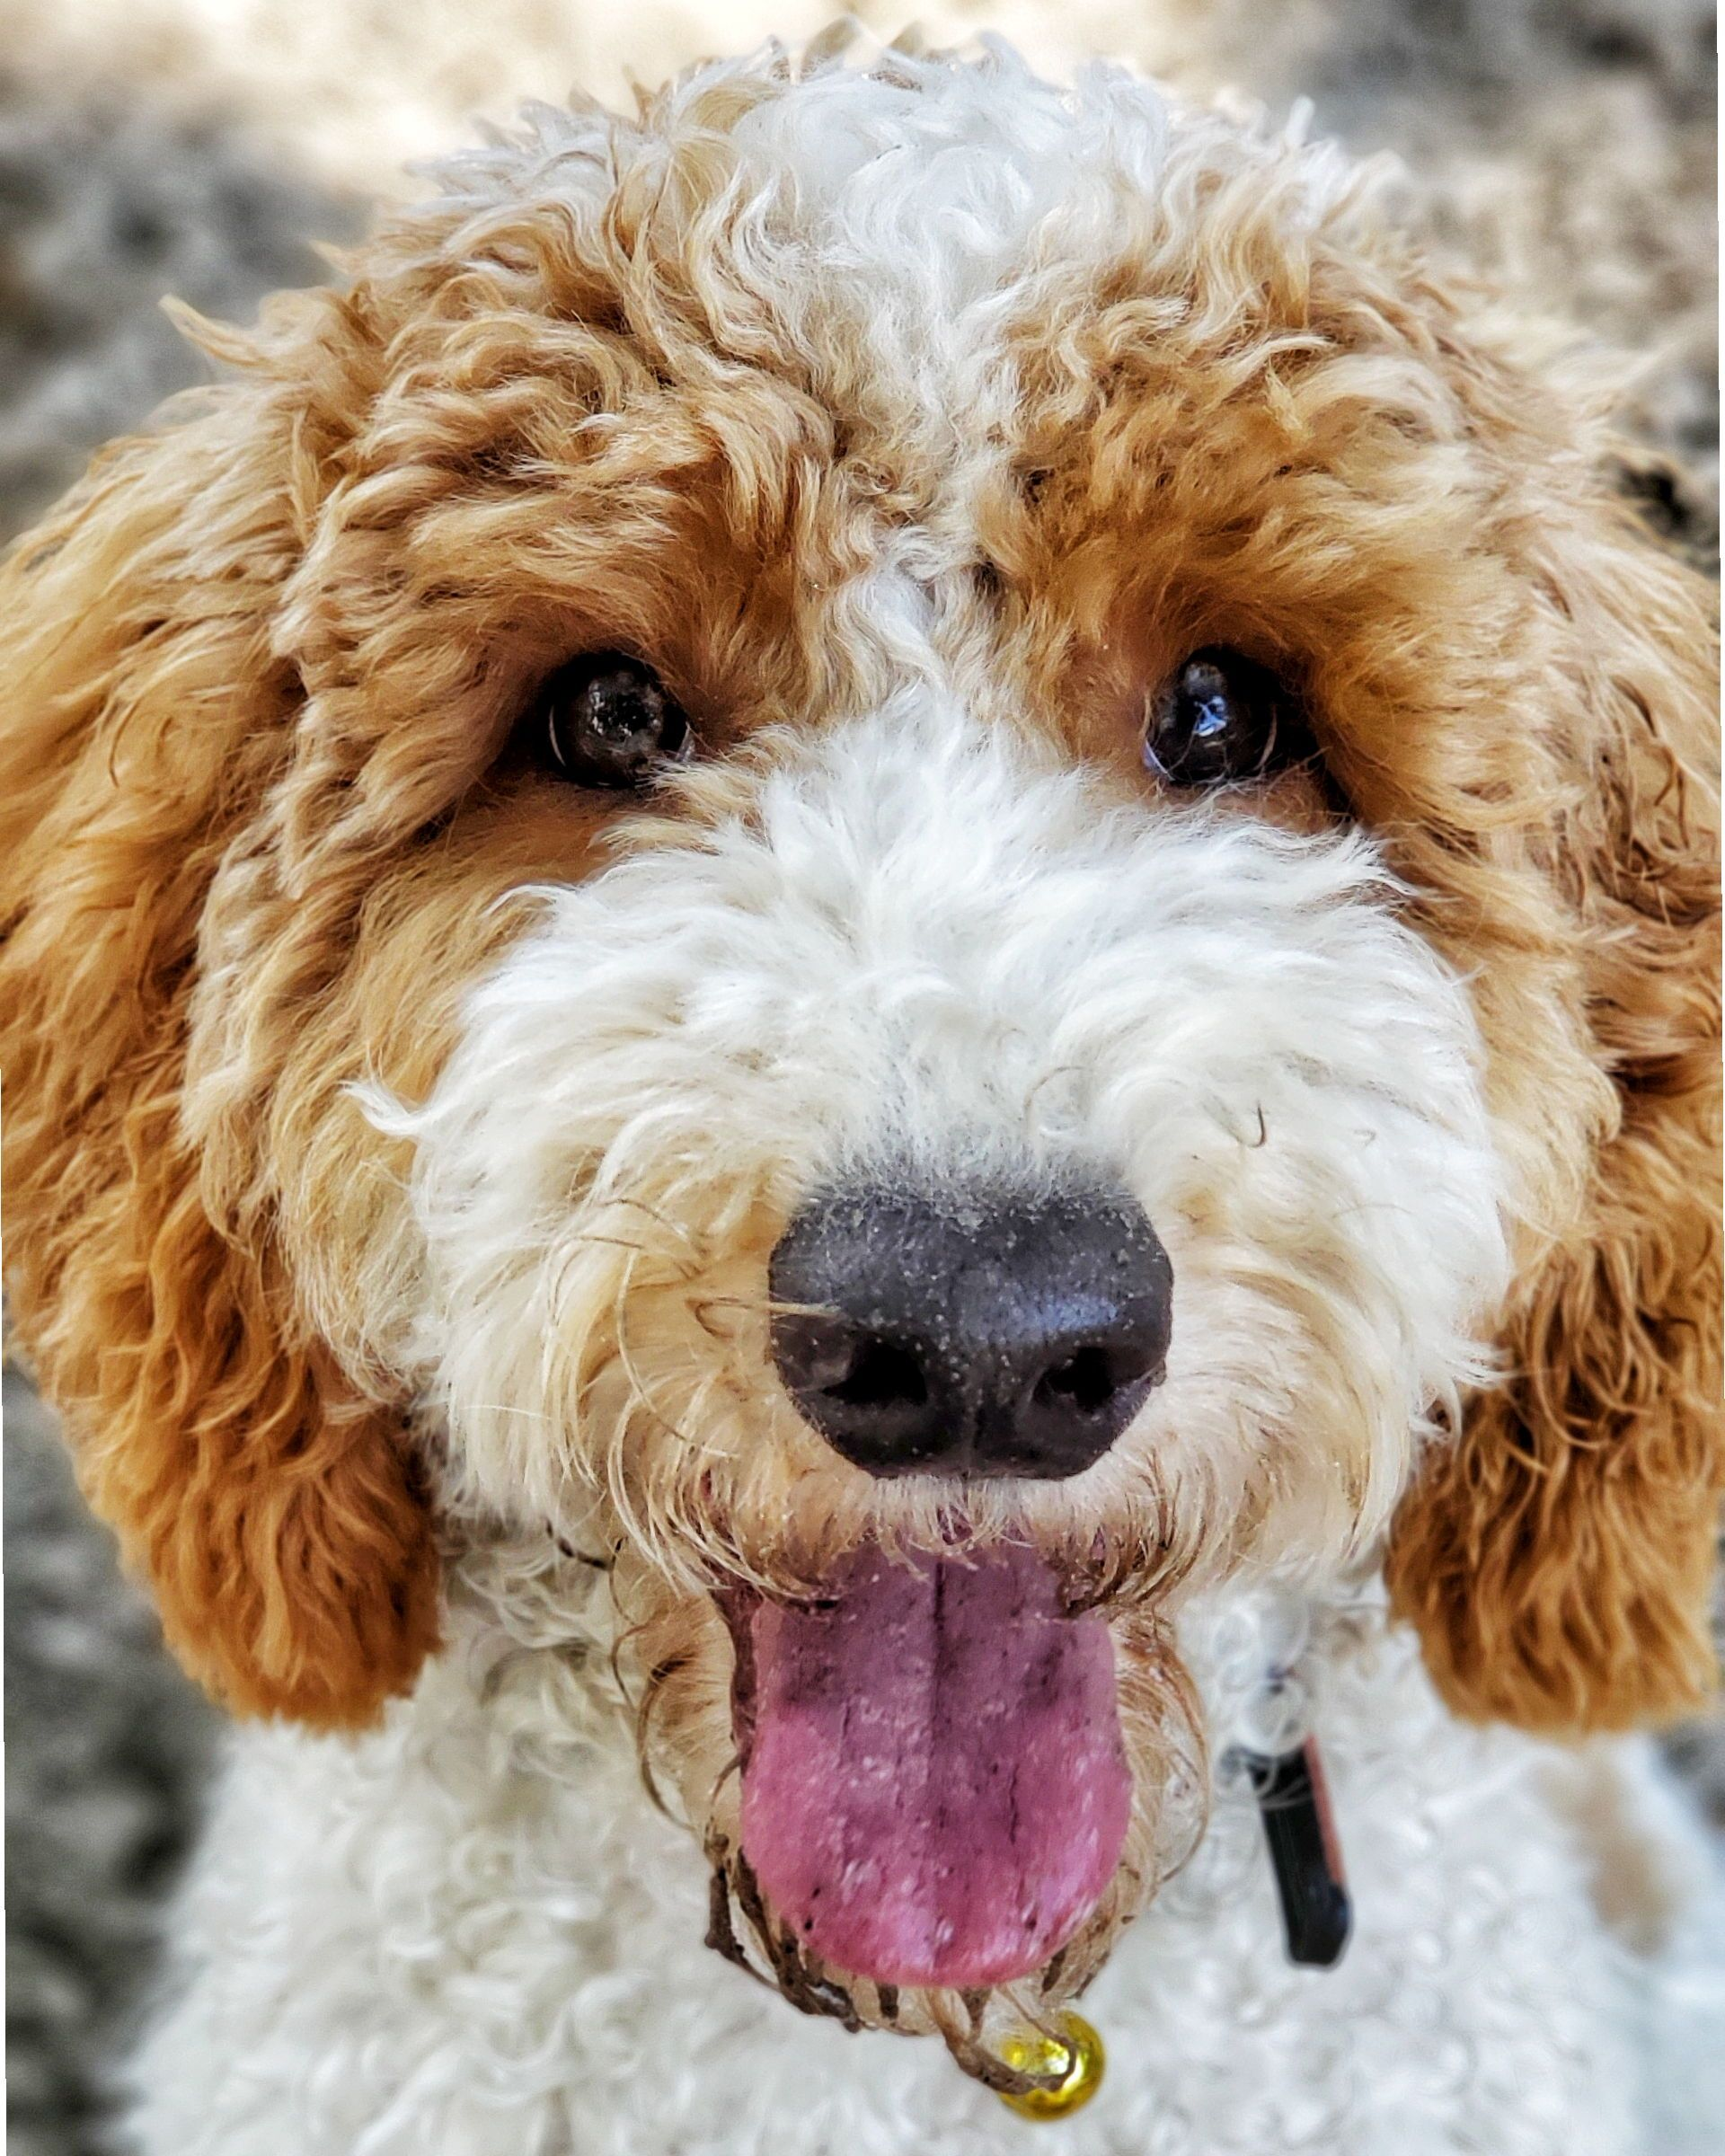 River Such A Sweet And Cute Labradoodle We Love Whenever He Come